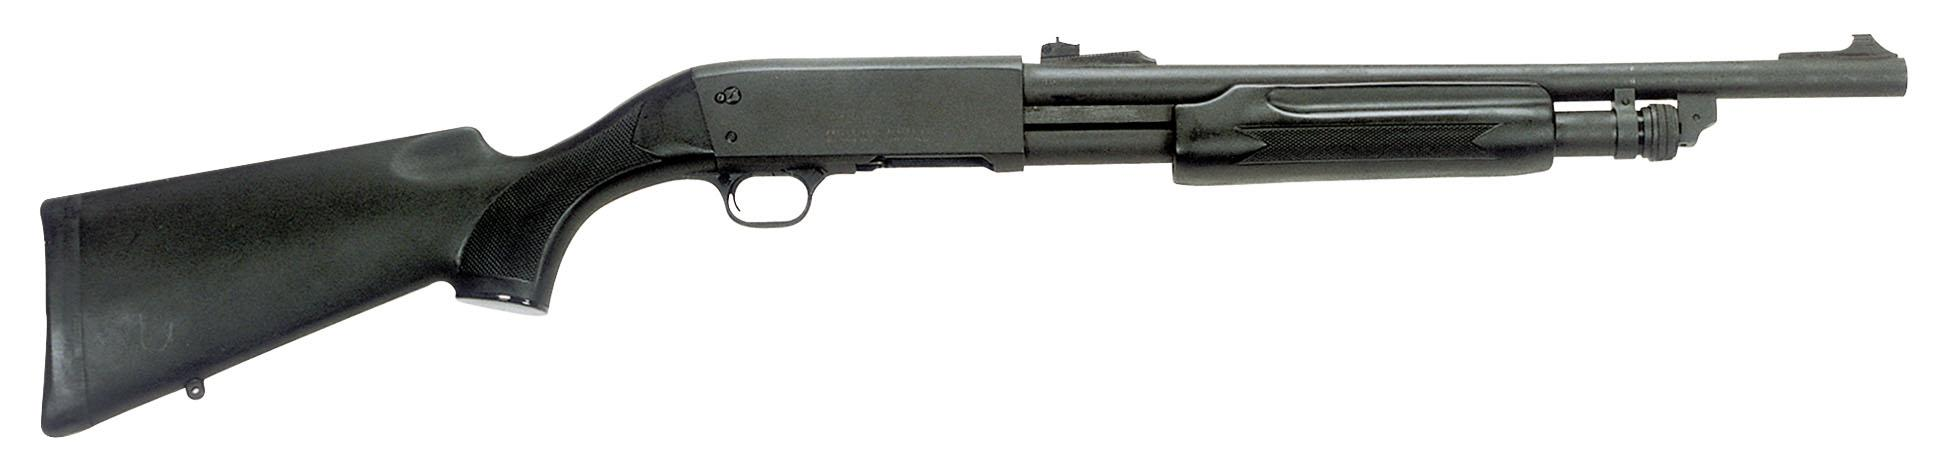 NORINCO pump action shotgun (Down Ejecting)